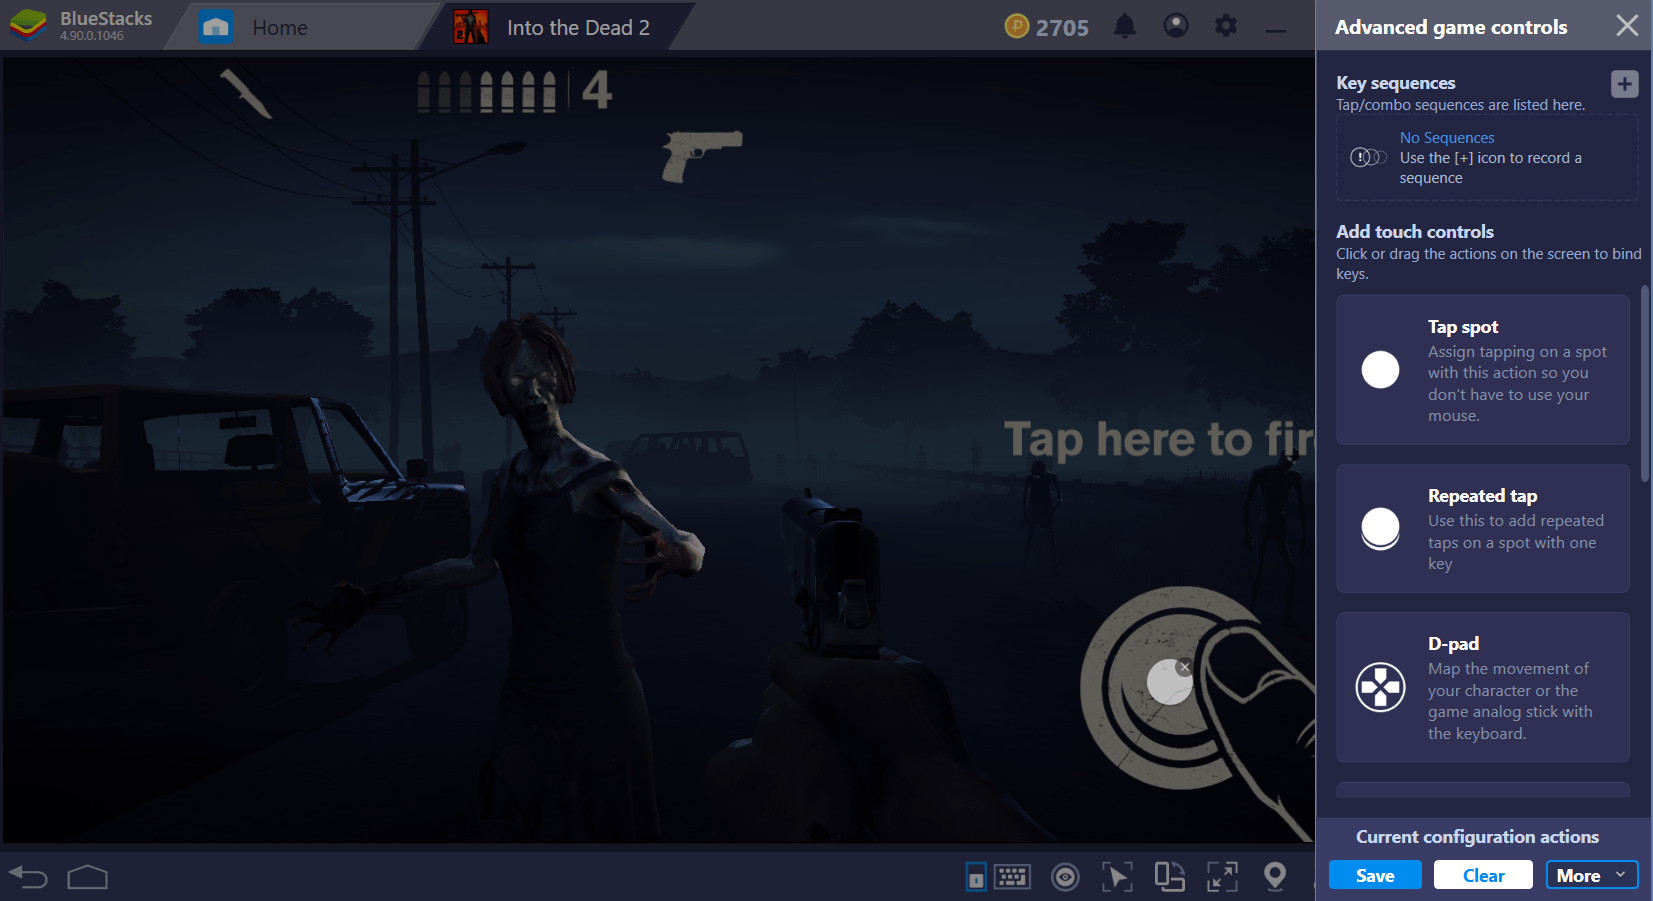 Guide to Playing Into The Dead 2 on BlueStacks